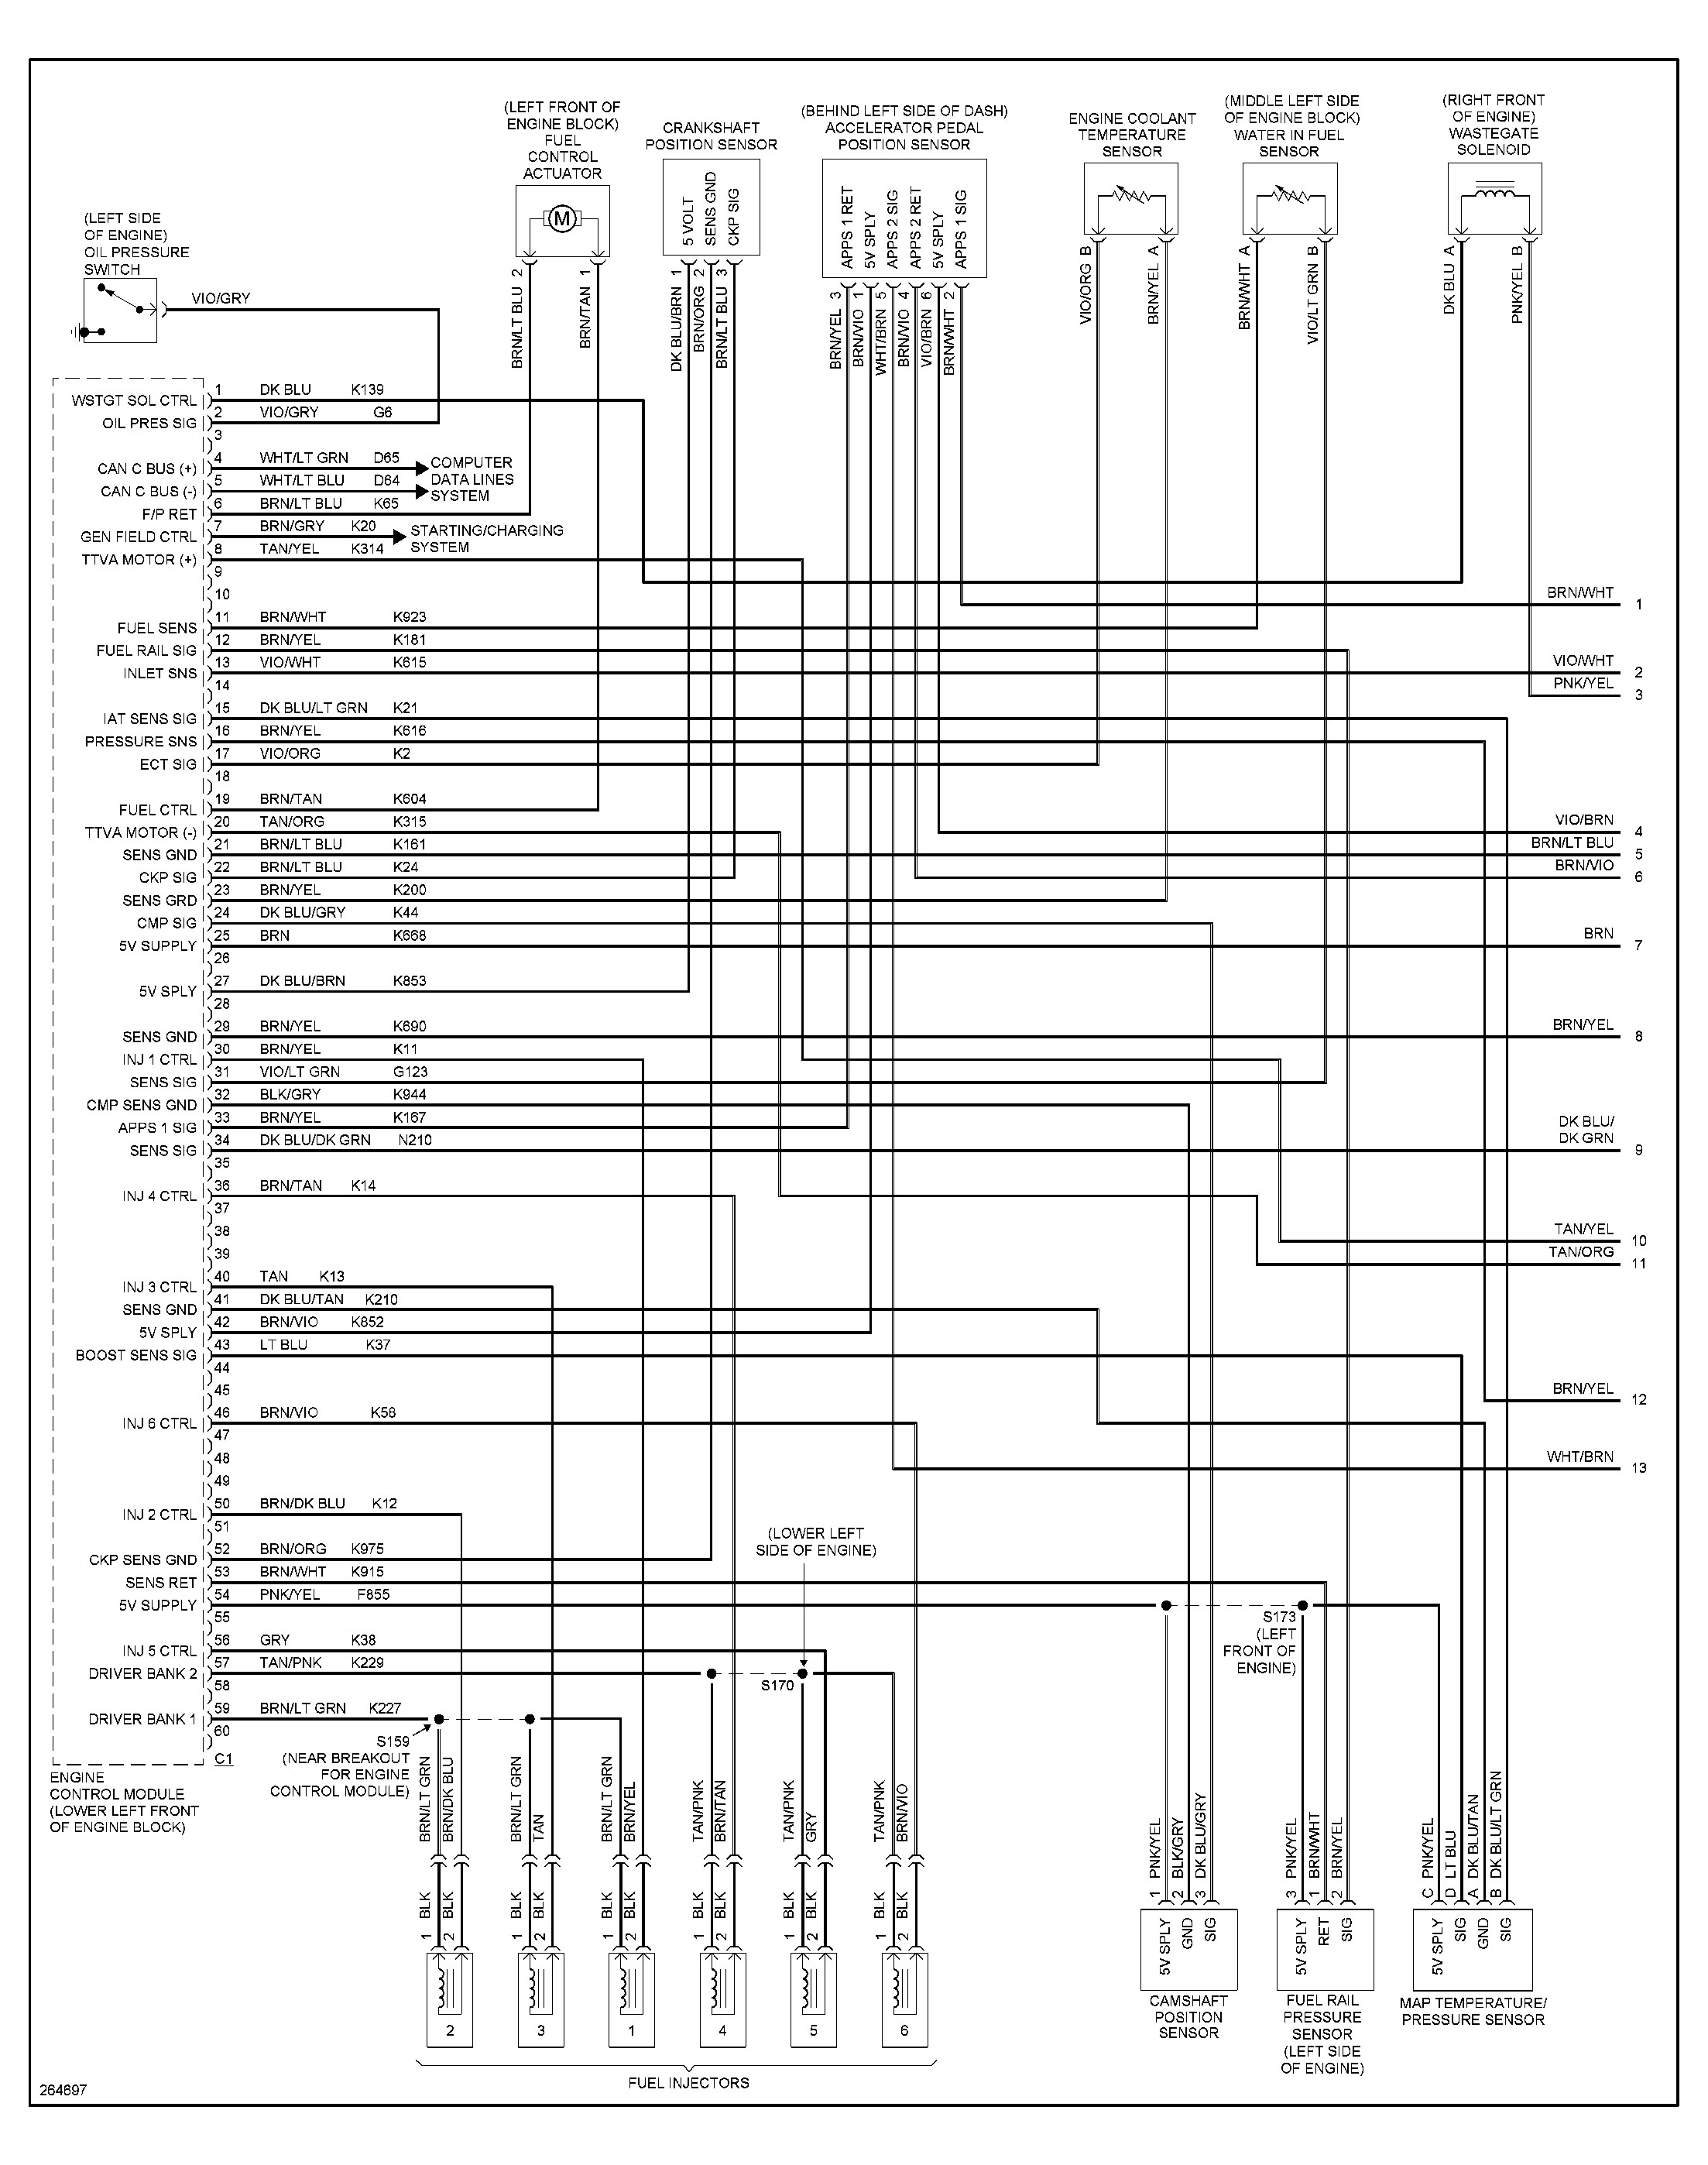 2004 dodge wiring diagram free picture schematic 2004 dodge ram 1500 wiring diagram | free wiring diagram dodge d250 wiring diagram free picture schematic